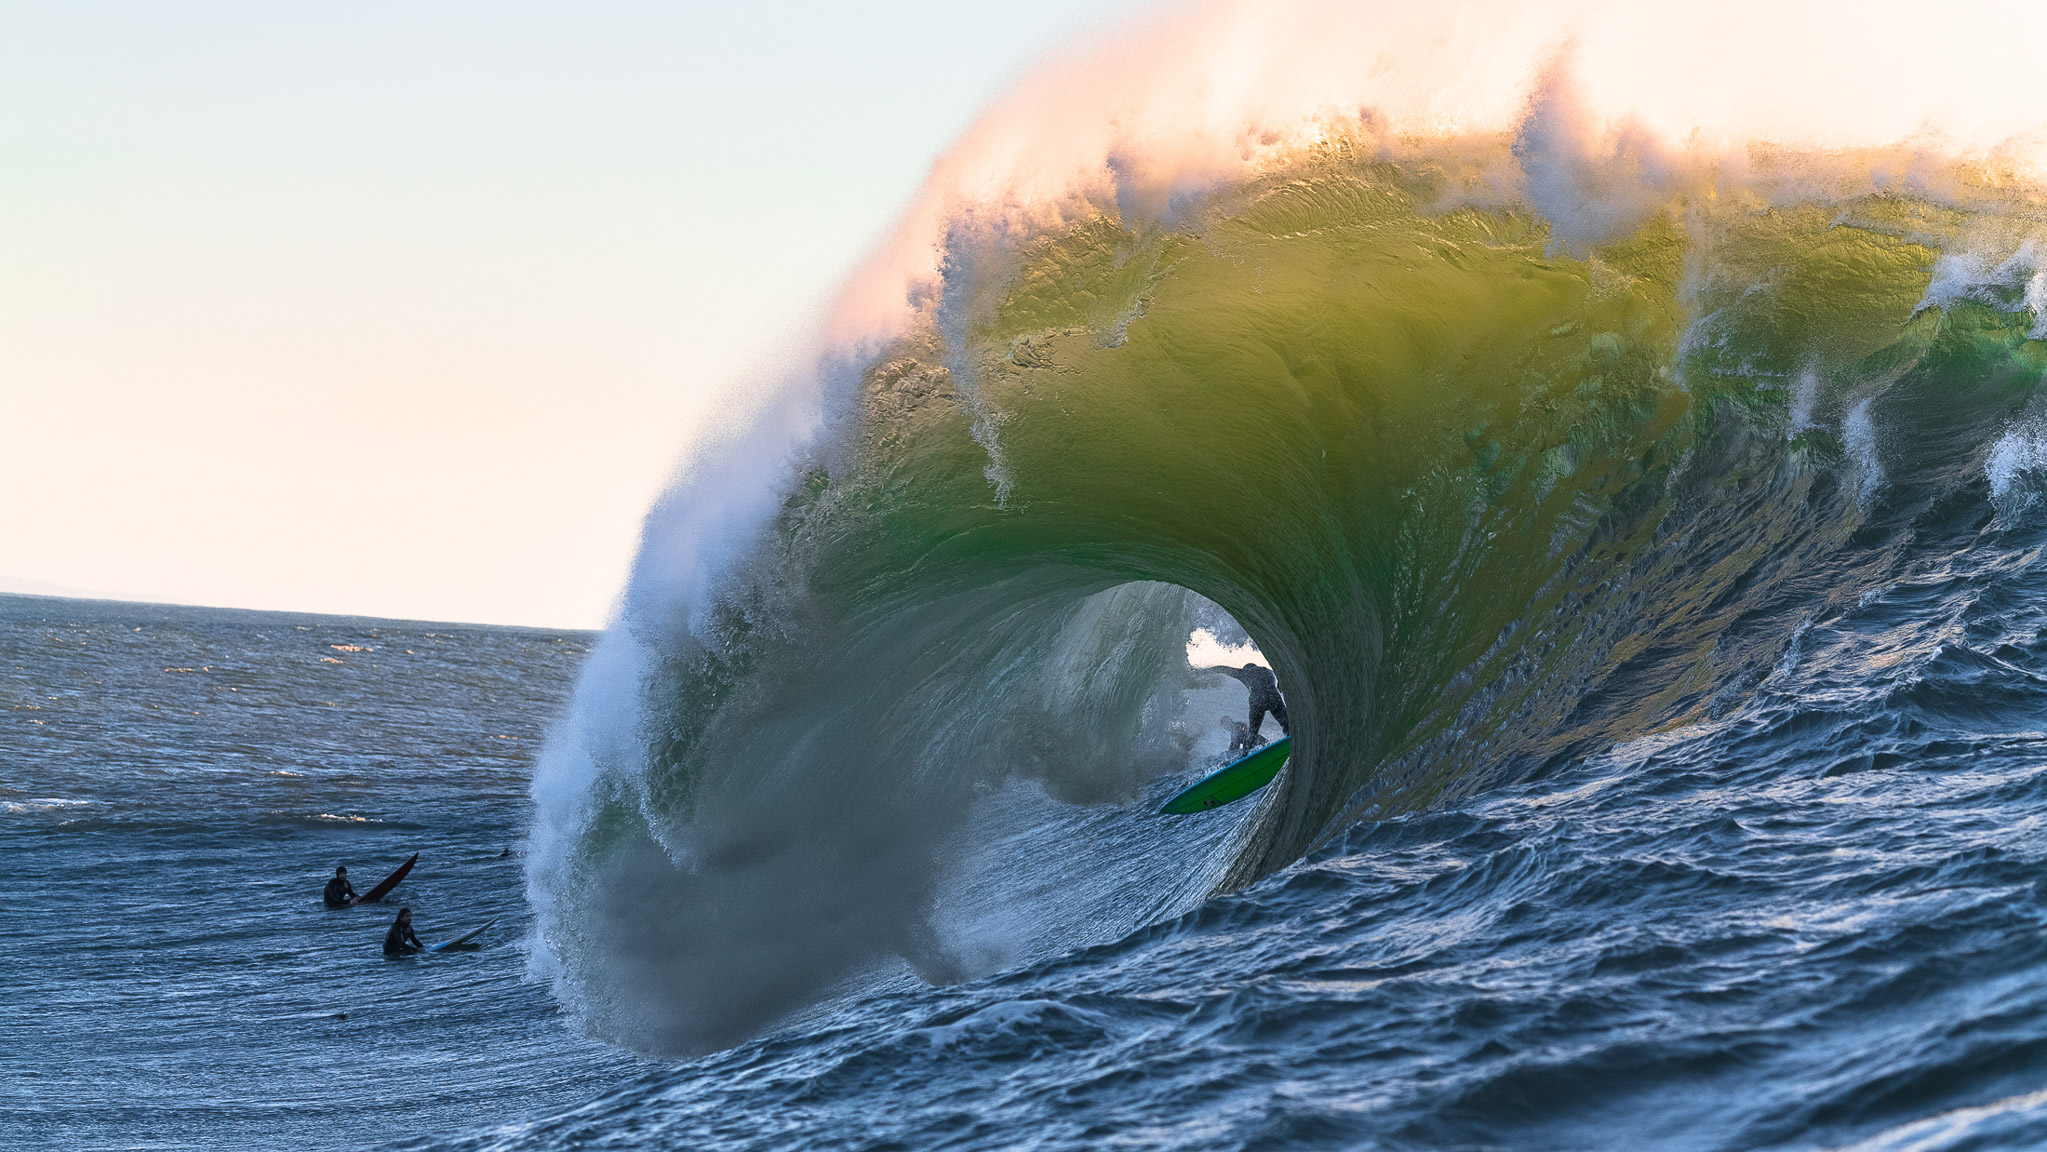 Will Patton, Mavericks, California